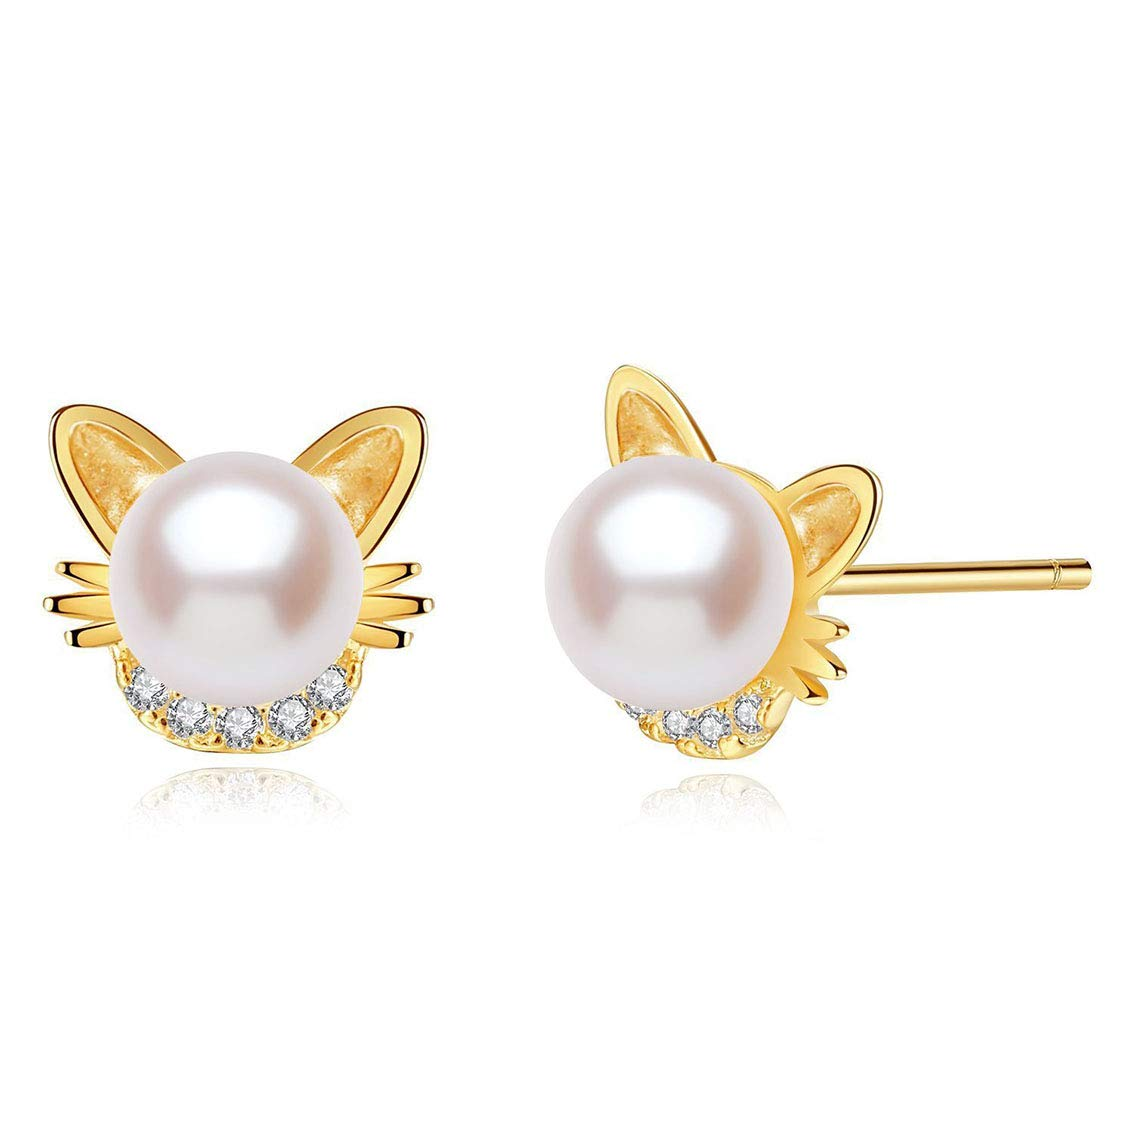 XinHuiGY Girls Earrings Cute cat Pearl Earring,14k Gold with Shiny Zircon Ear Studs Jewelry for Women Girl with Gift Box Gift for Birthday Halloween Christmas Thanksgiving cat Lover by XinHuiGY